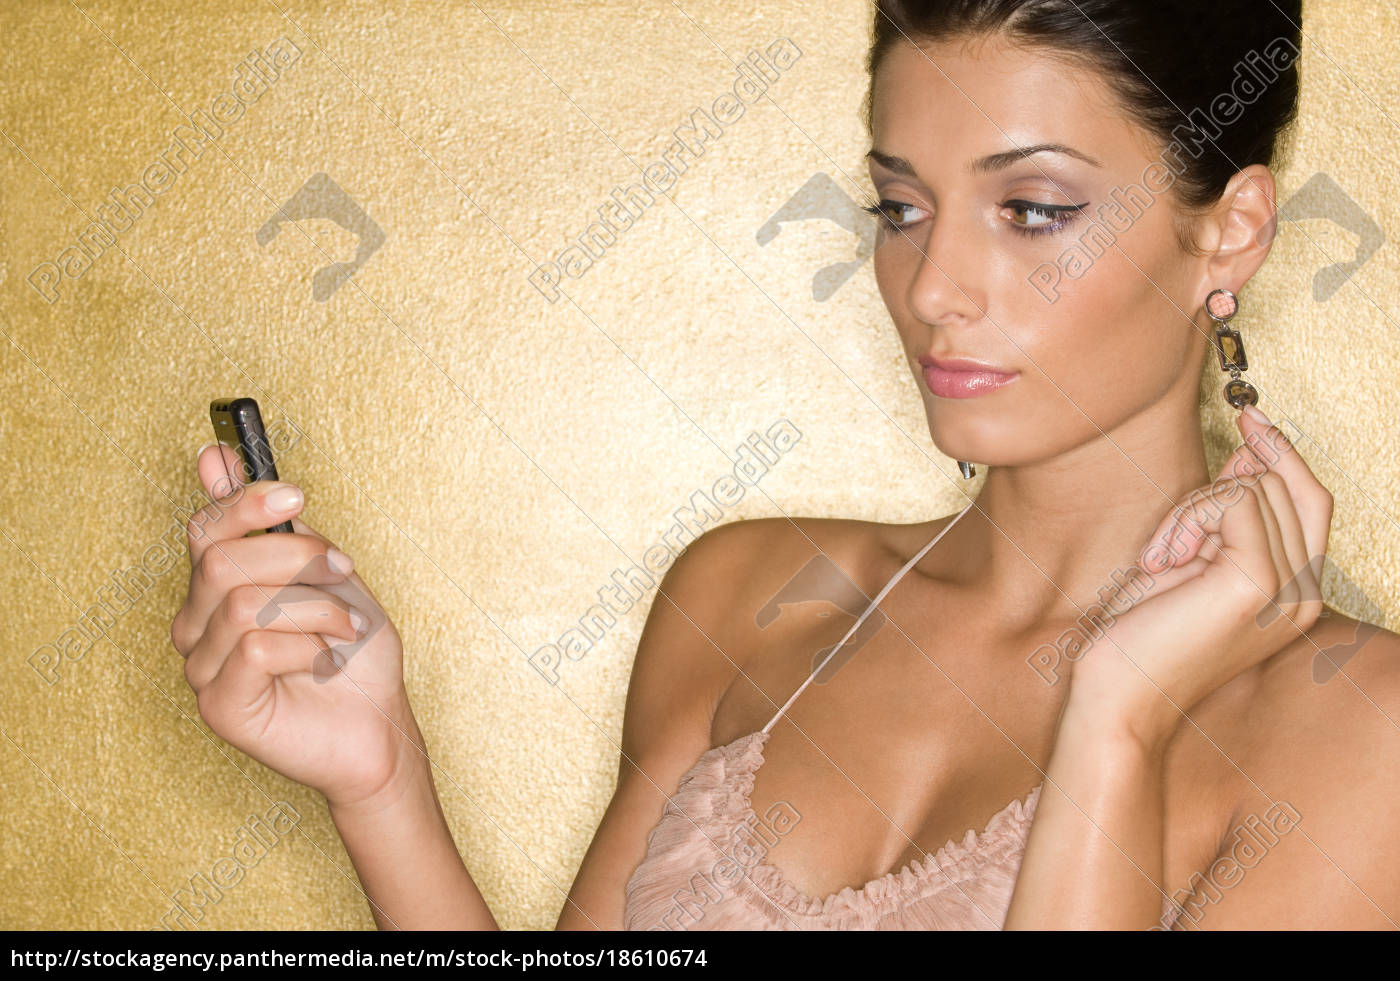 a, woman, using, a, cell, phone - 18610674